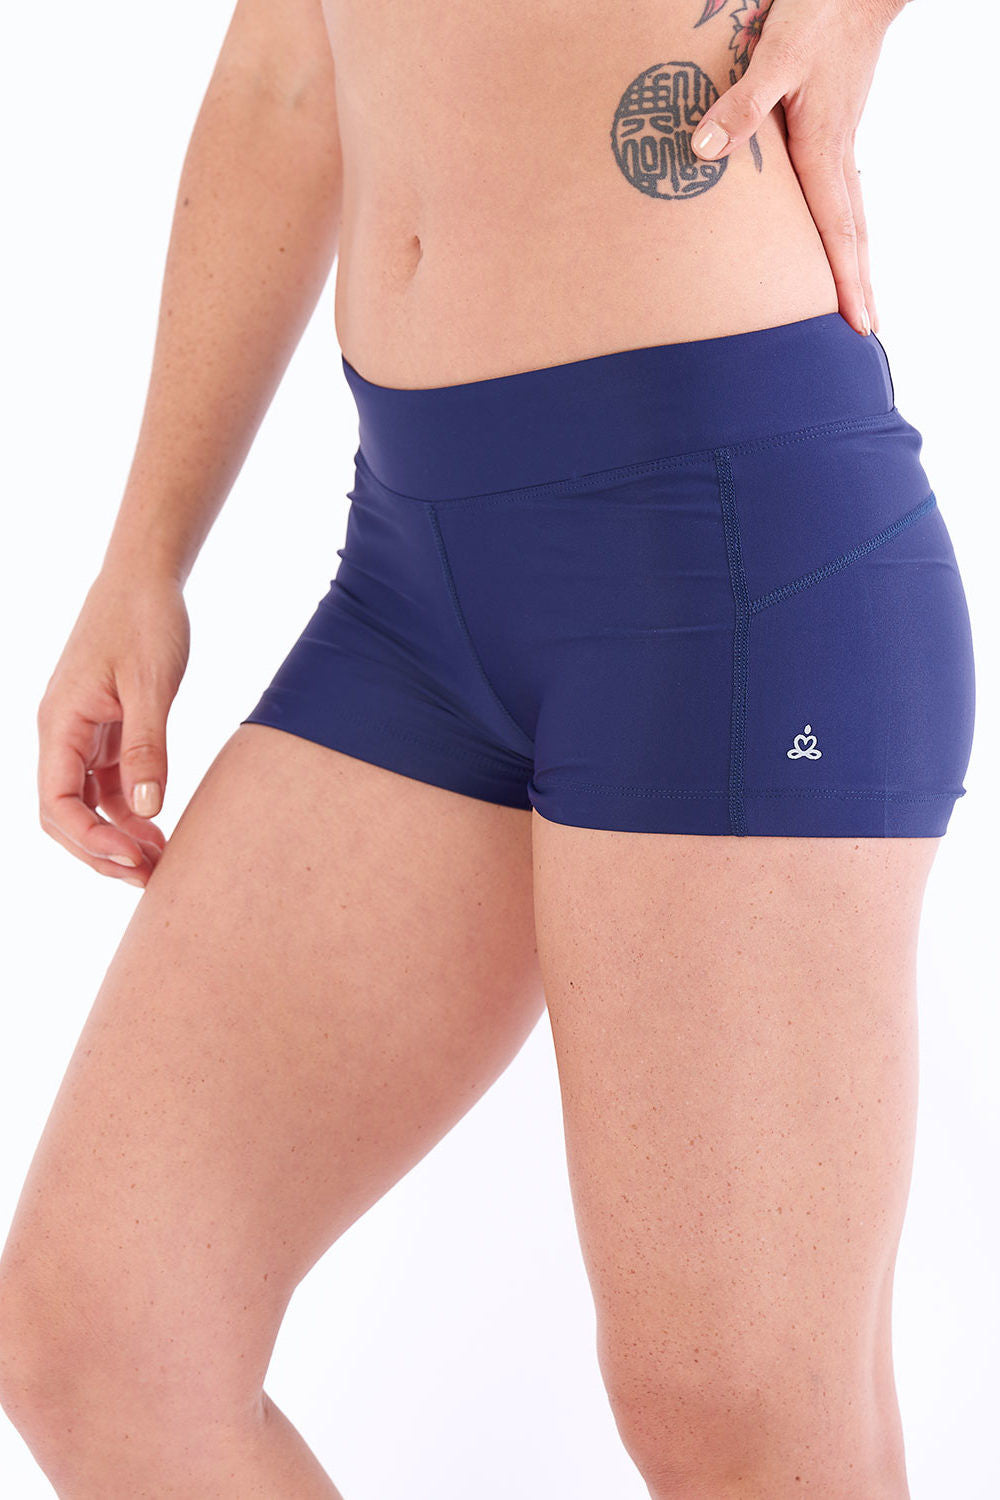 Activewear yoga shorts hot yoga moisture wicking